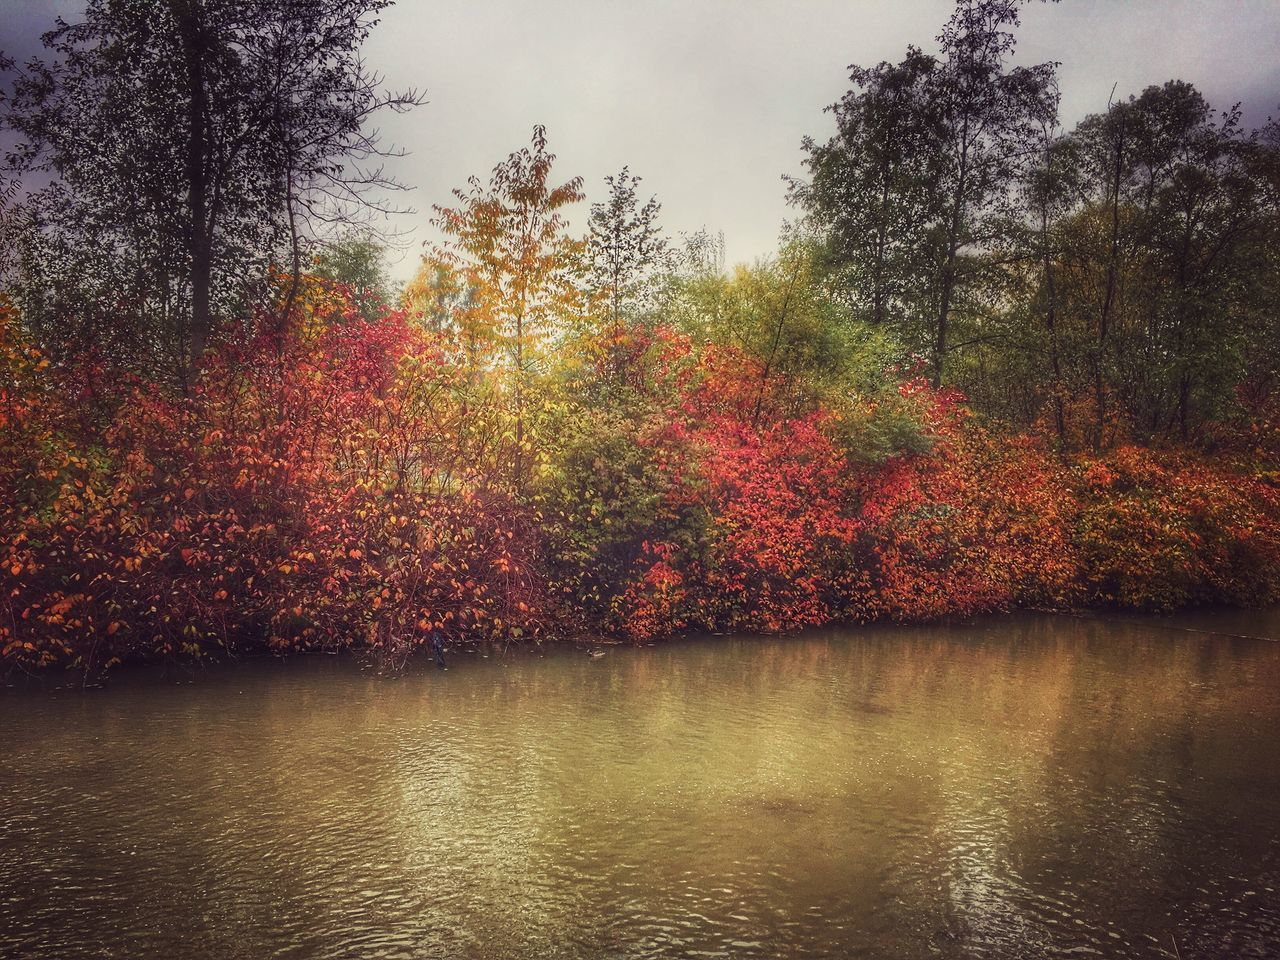 autumn, change, tree, nature, beauty in nature, leaf, tranquility, scenics, no people, water, tranquil scene, lake, outdoors, forest, growth, landscape, day, sky, maple